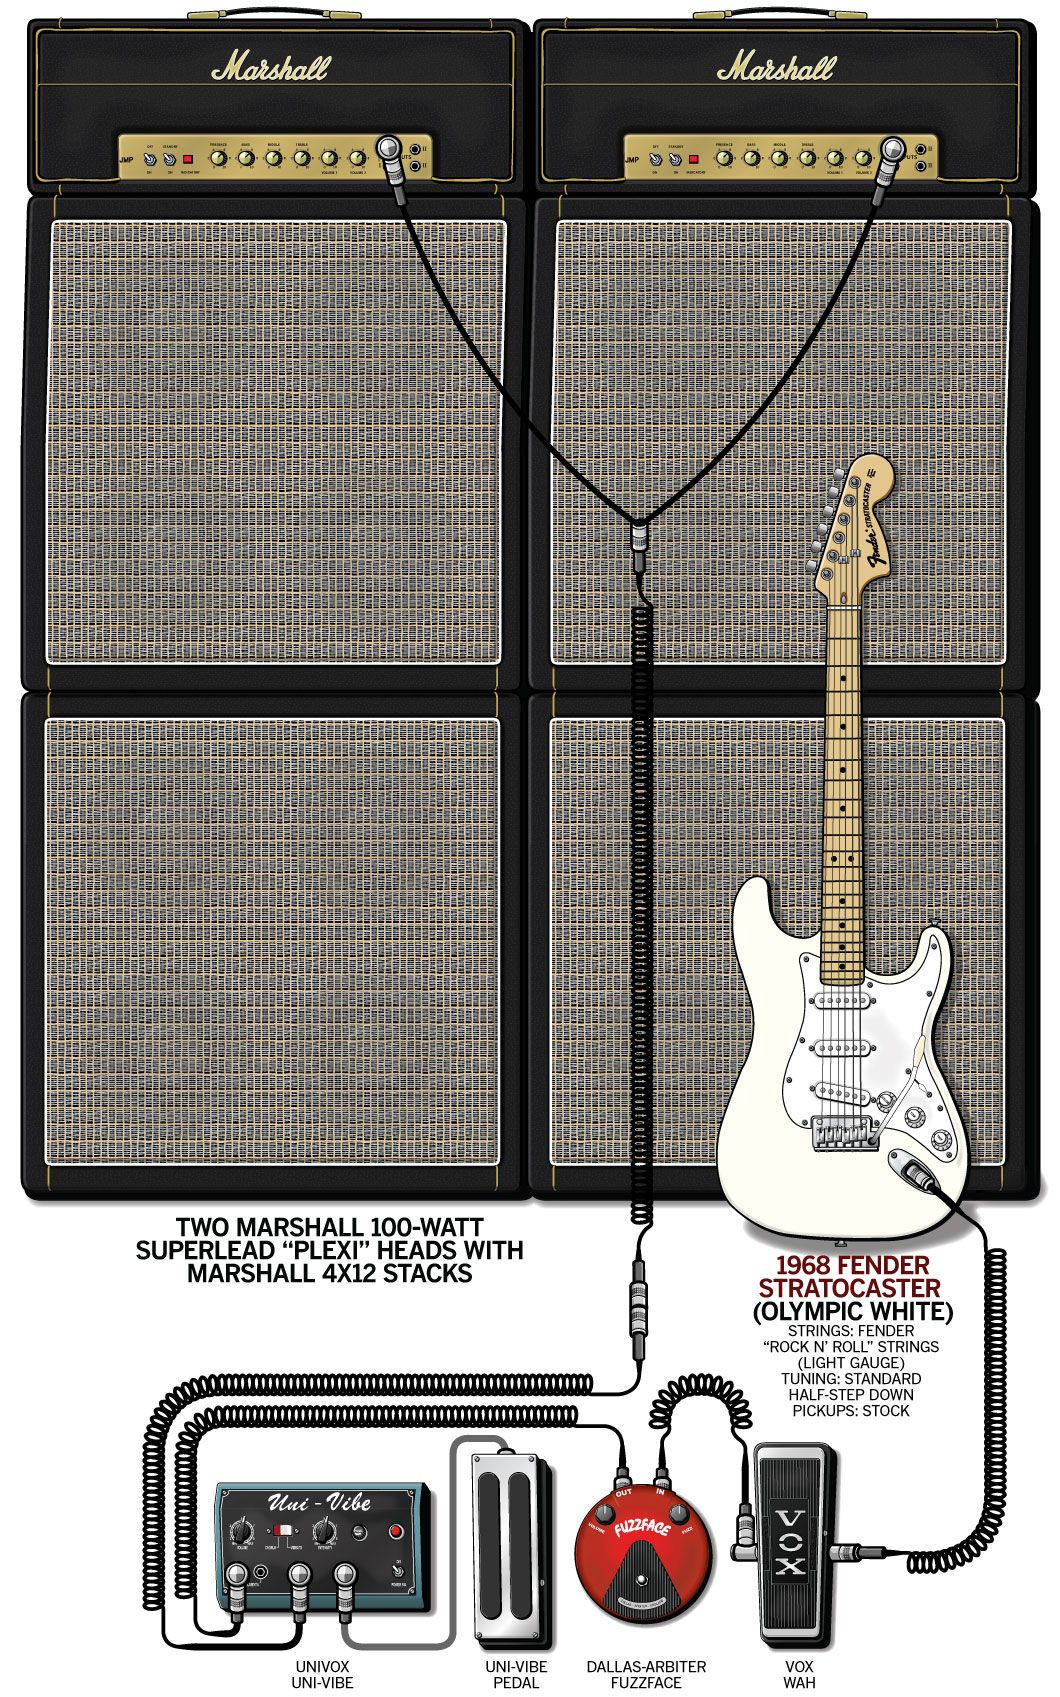 a detailed gear diagram of jimi hendrix 2011 woodstock stage setupa detailed gear diagram of jimi hendrix 2011 woodstock stage setup that traces the signal flow of the equipment in his guitar rig